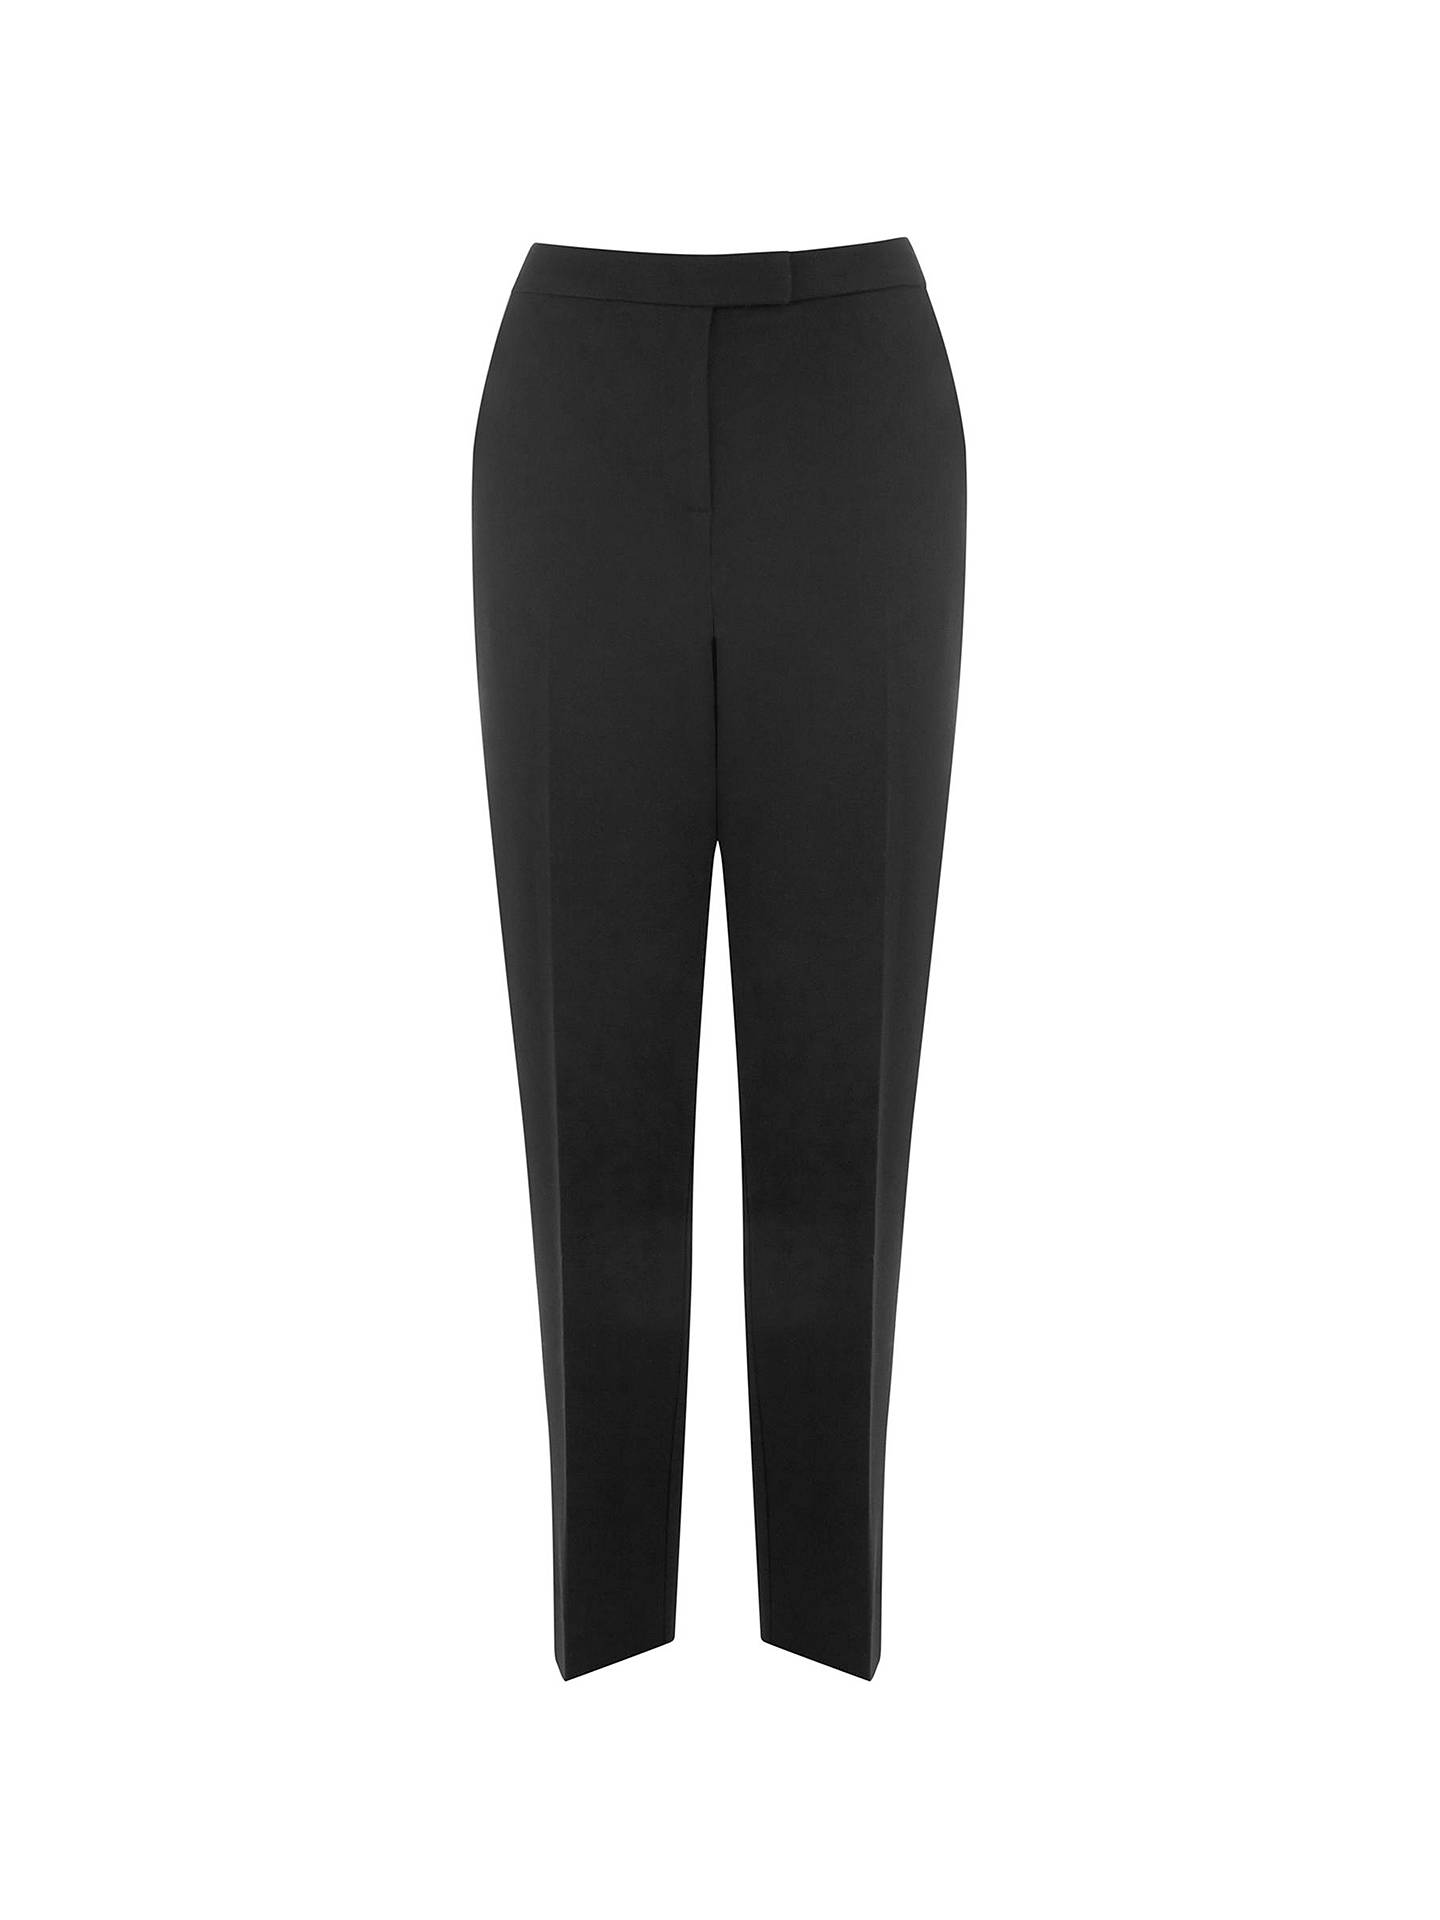 BuyWarehouse Slim Leg Trousers, Black, 6 Online at johnlewis.com